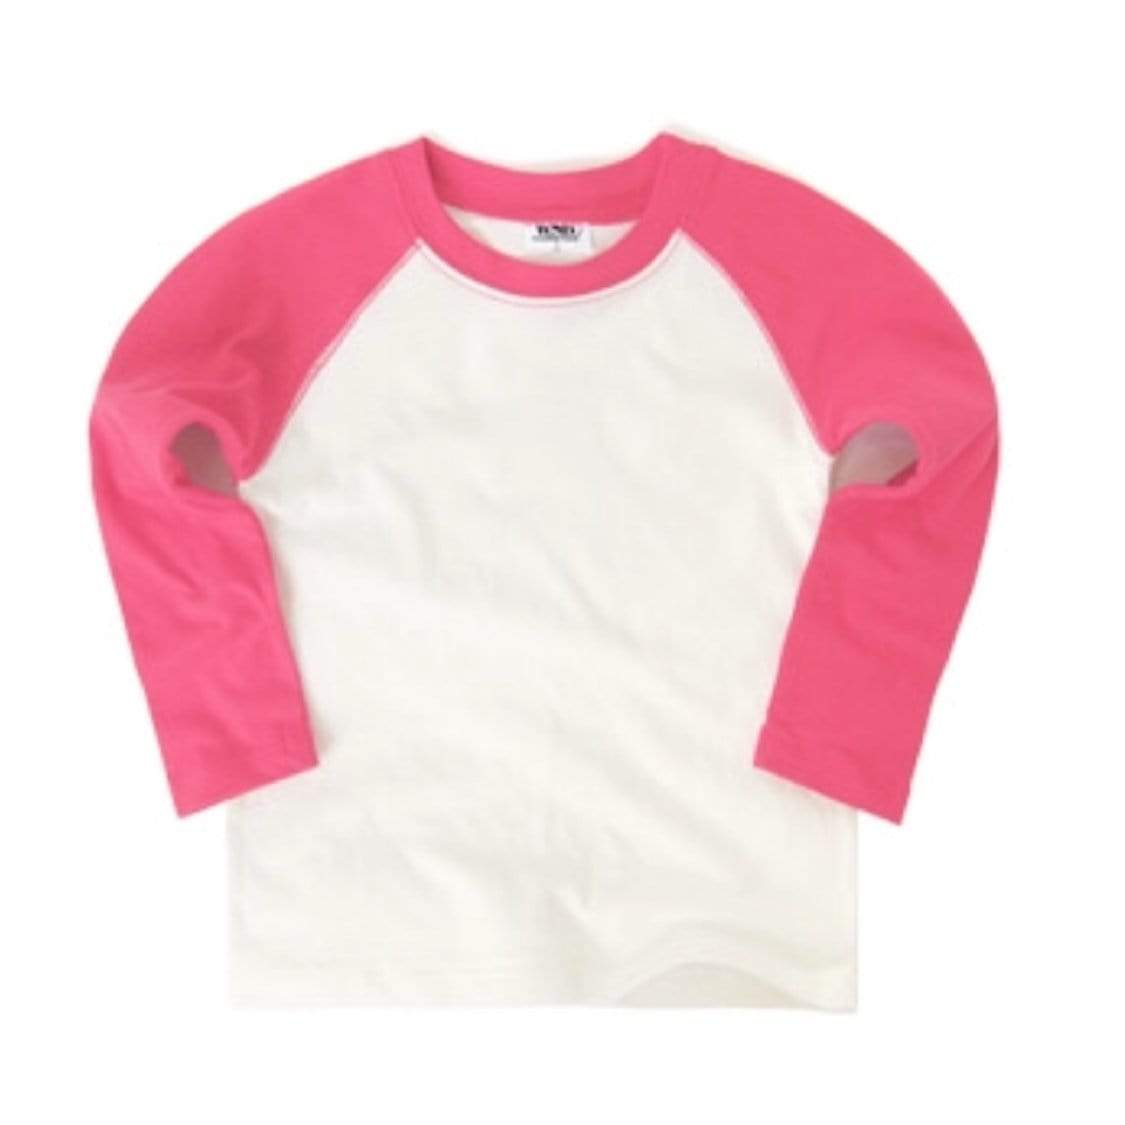 White Sketch Book - Cherry Pink Long Sleeve Raglan Shirt Long Sleeve Shirts White Sketch Book